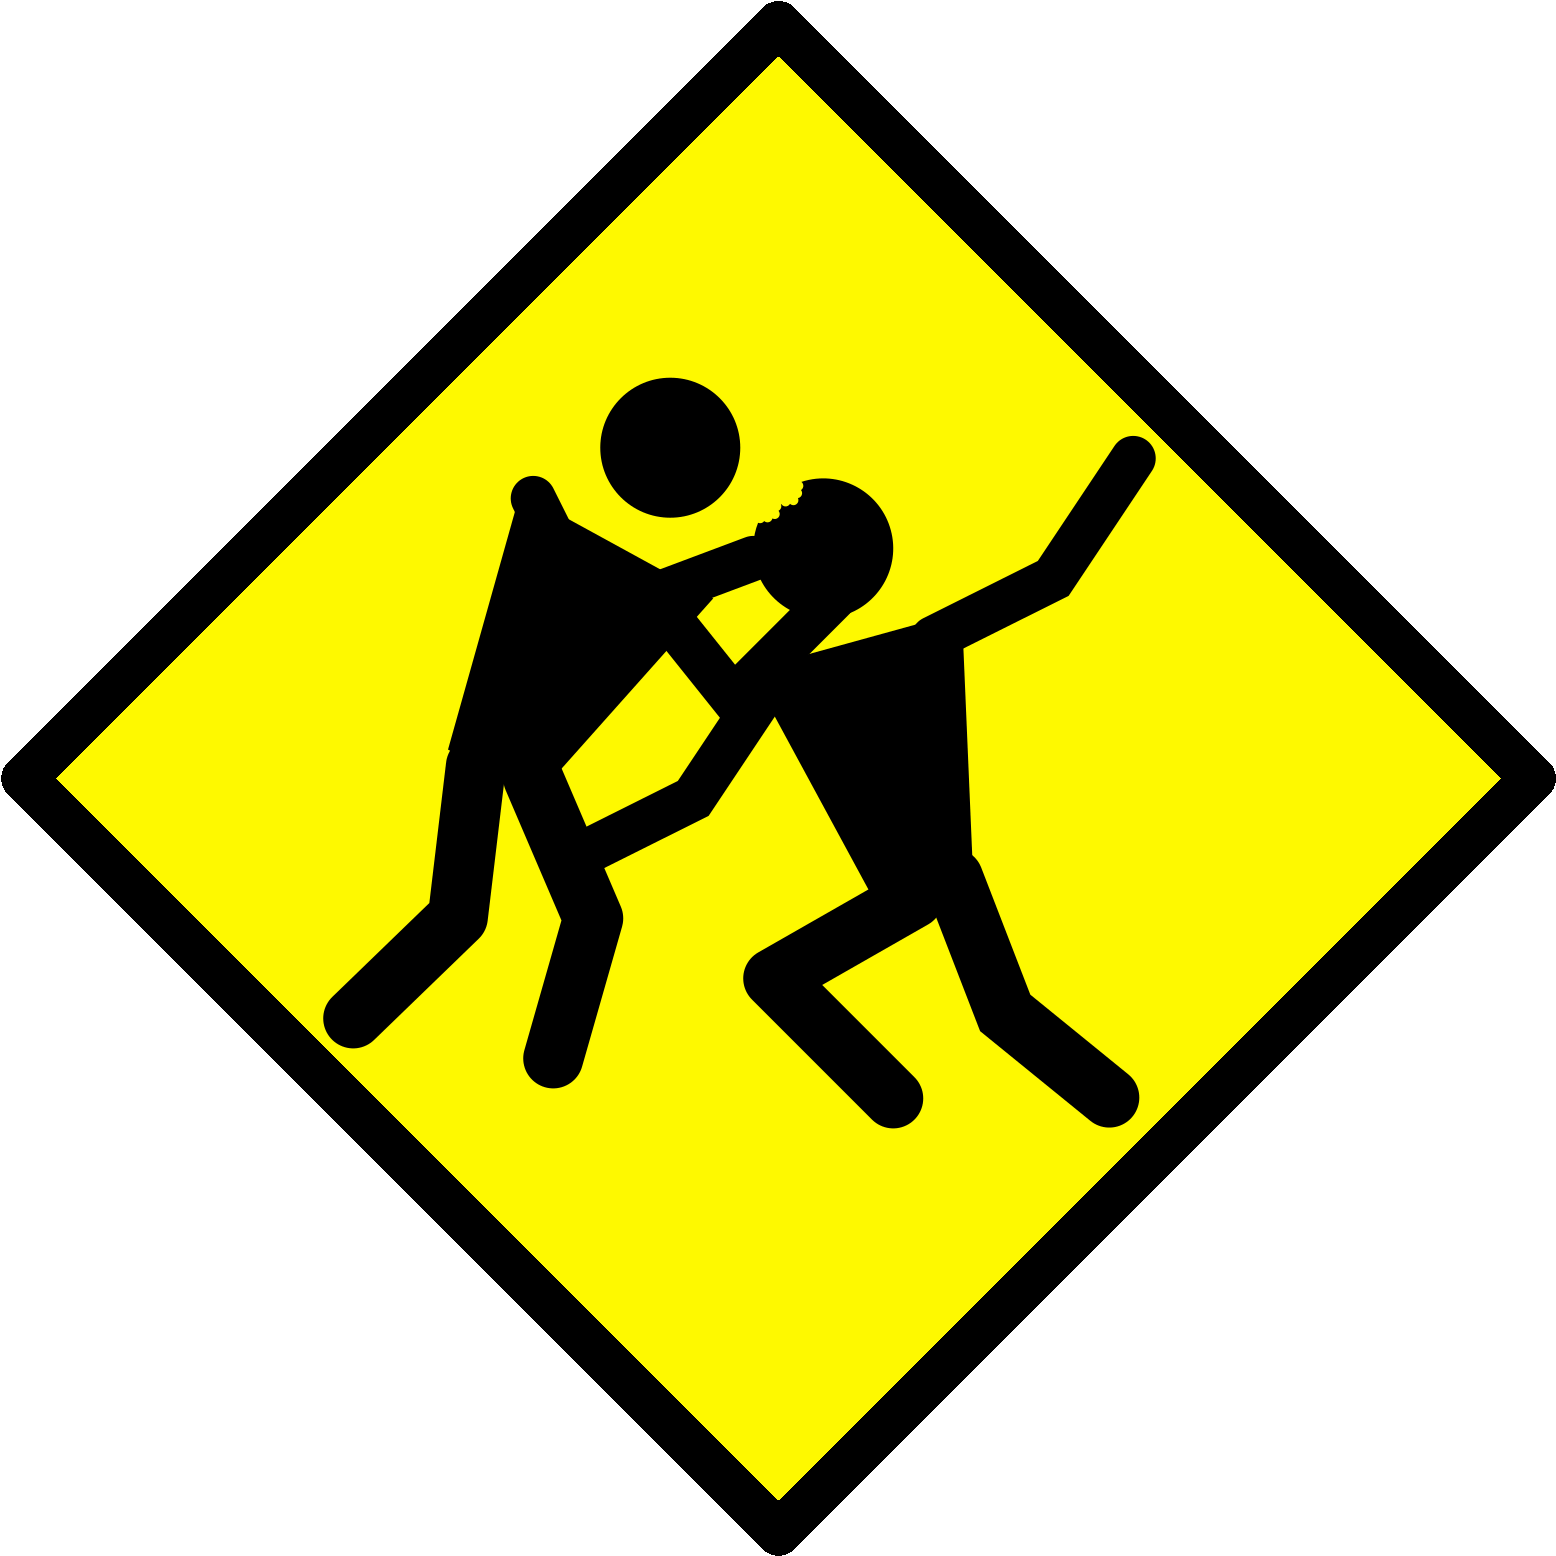 Caution-sign-warning-forbid-fighting-png